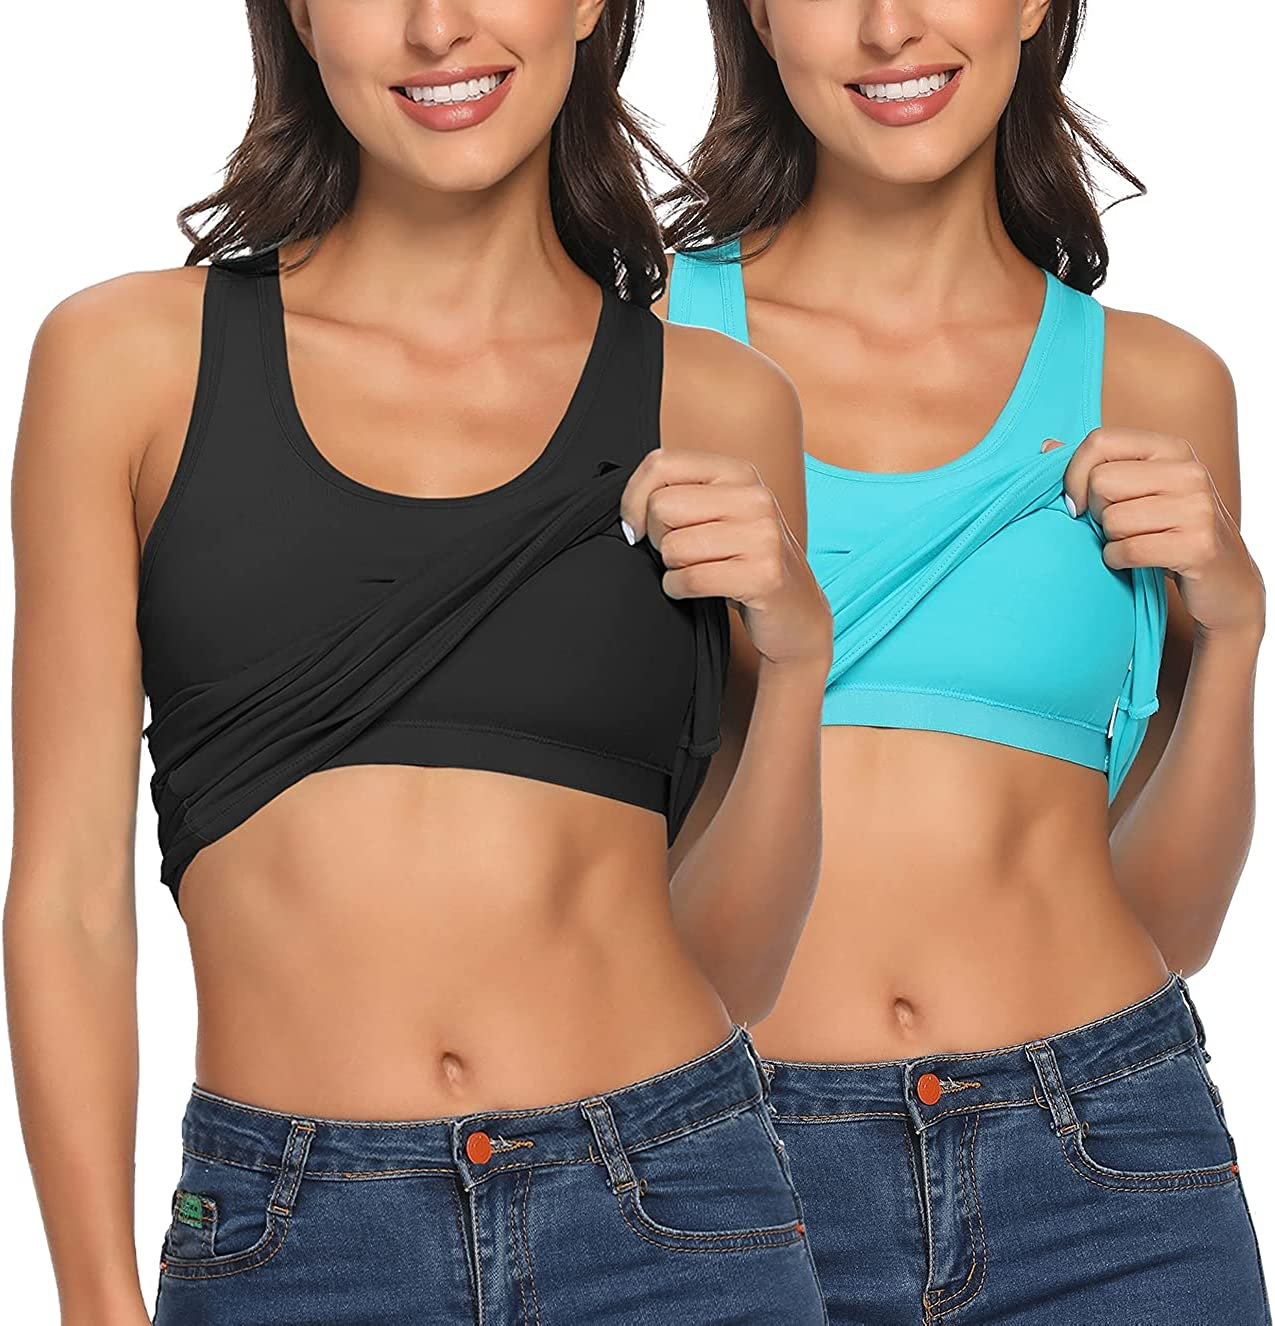 Tank Tops for Women Camisole with Shelf Bra Adjustable Strap Cami Sleeveless Summer Top for Workout Sleeping Layering